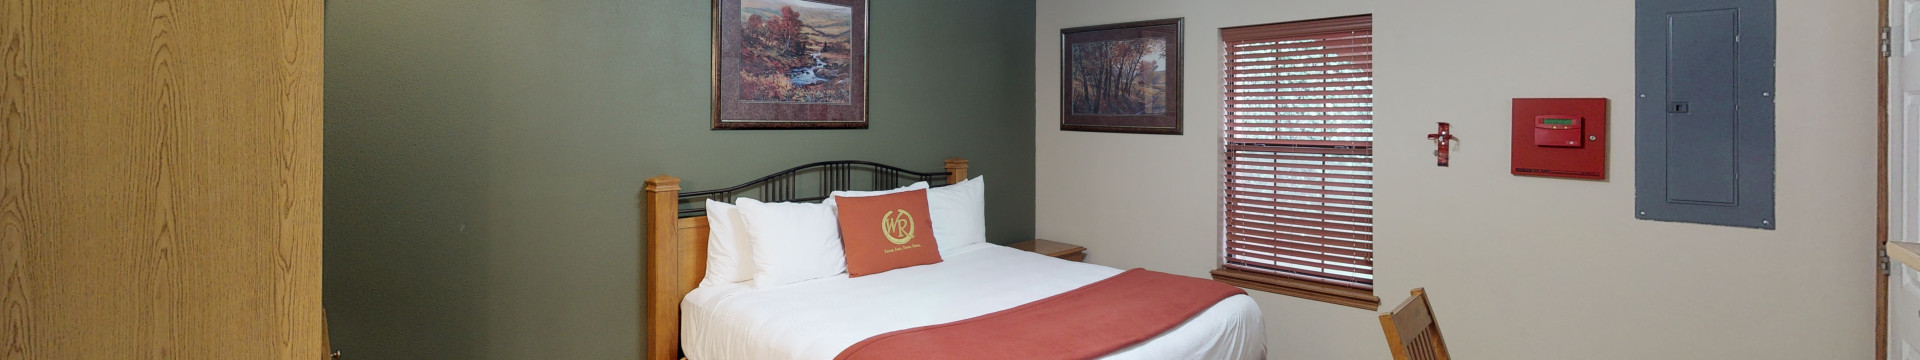 Studio Villas at our Branson Hotel near Roark Valley Road | Accommodations Suites